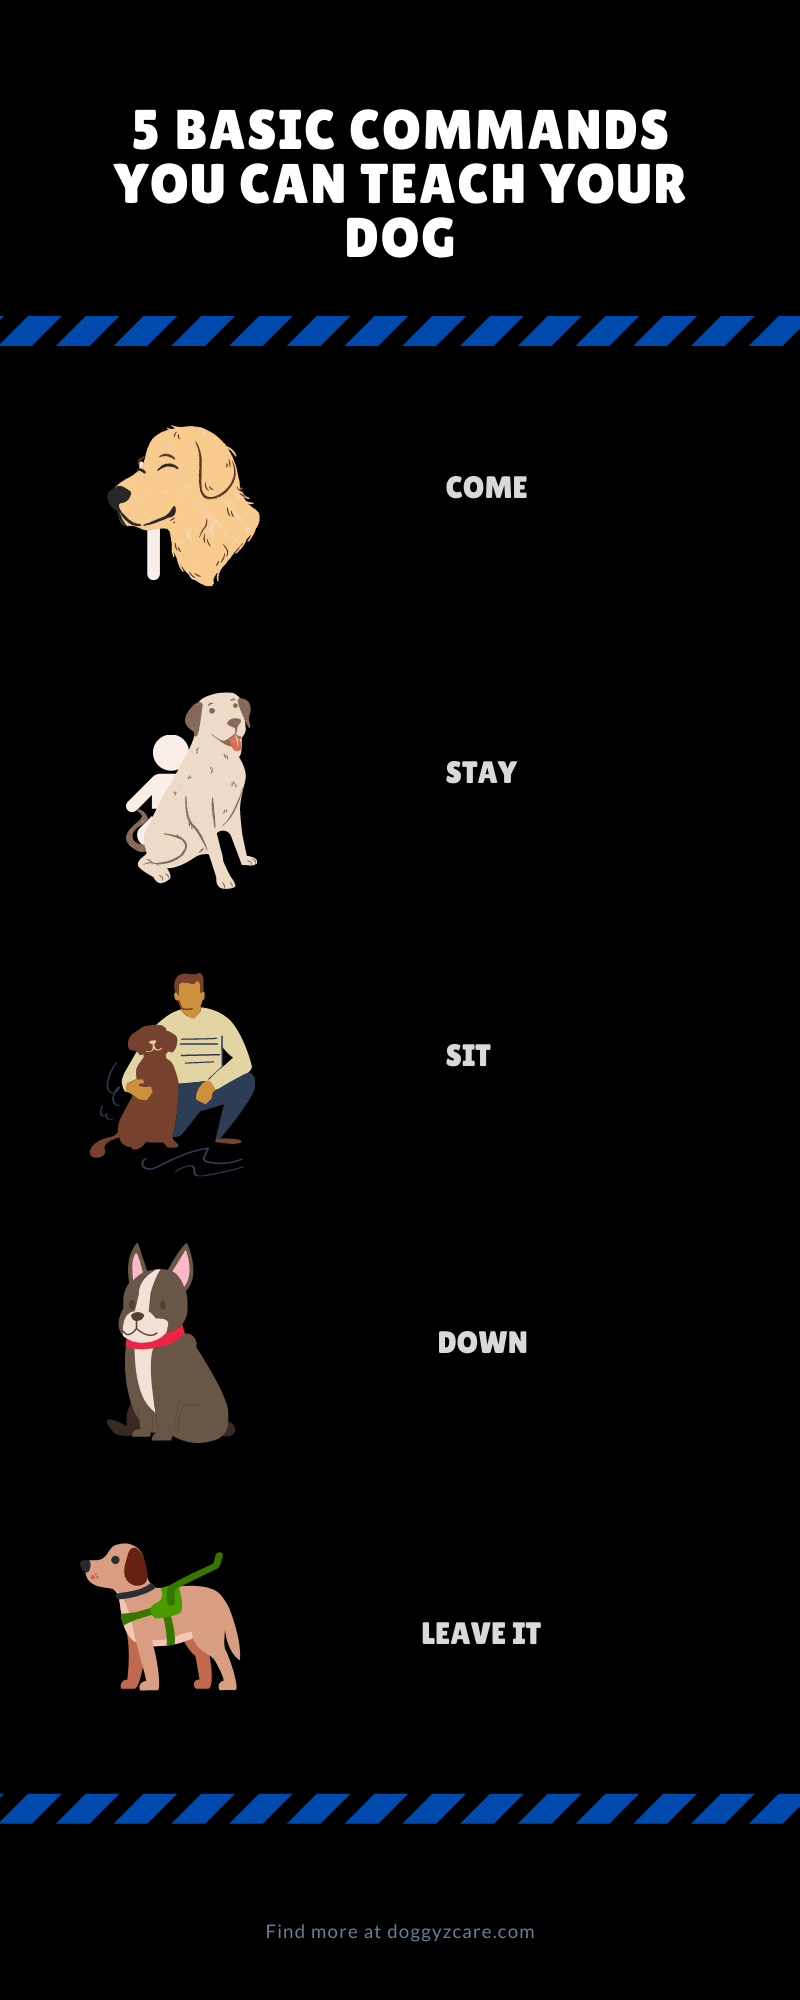 5 Basic commands you can teach your dog